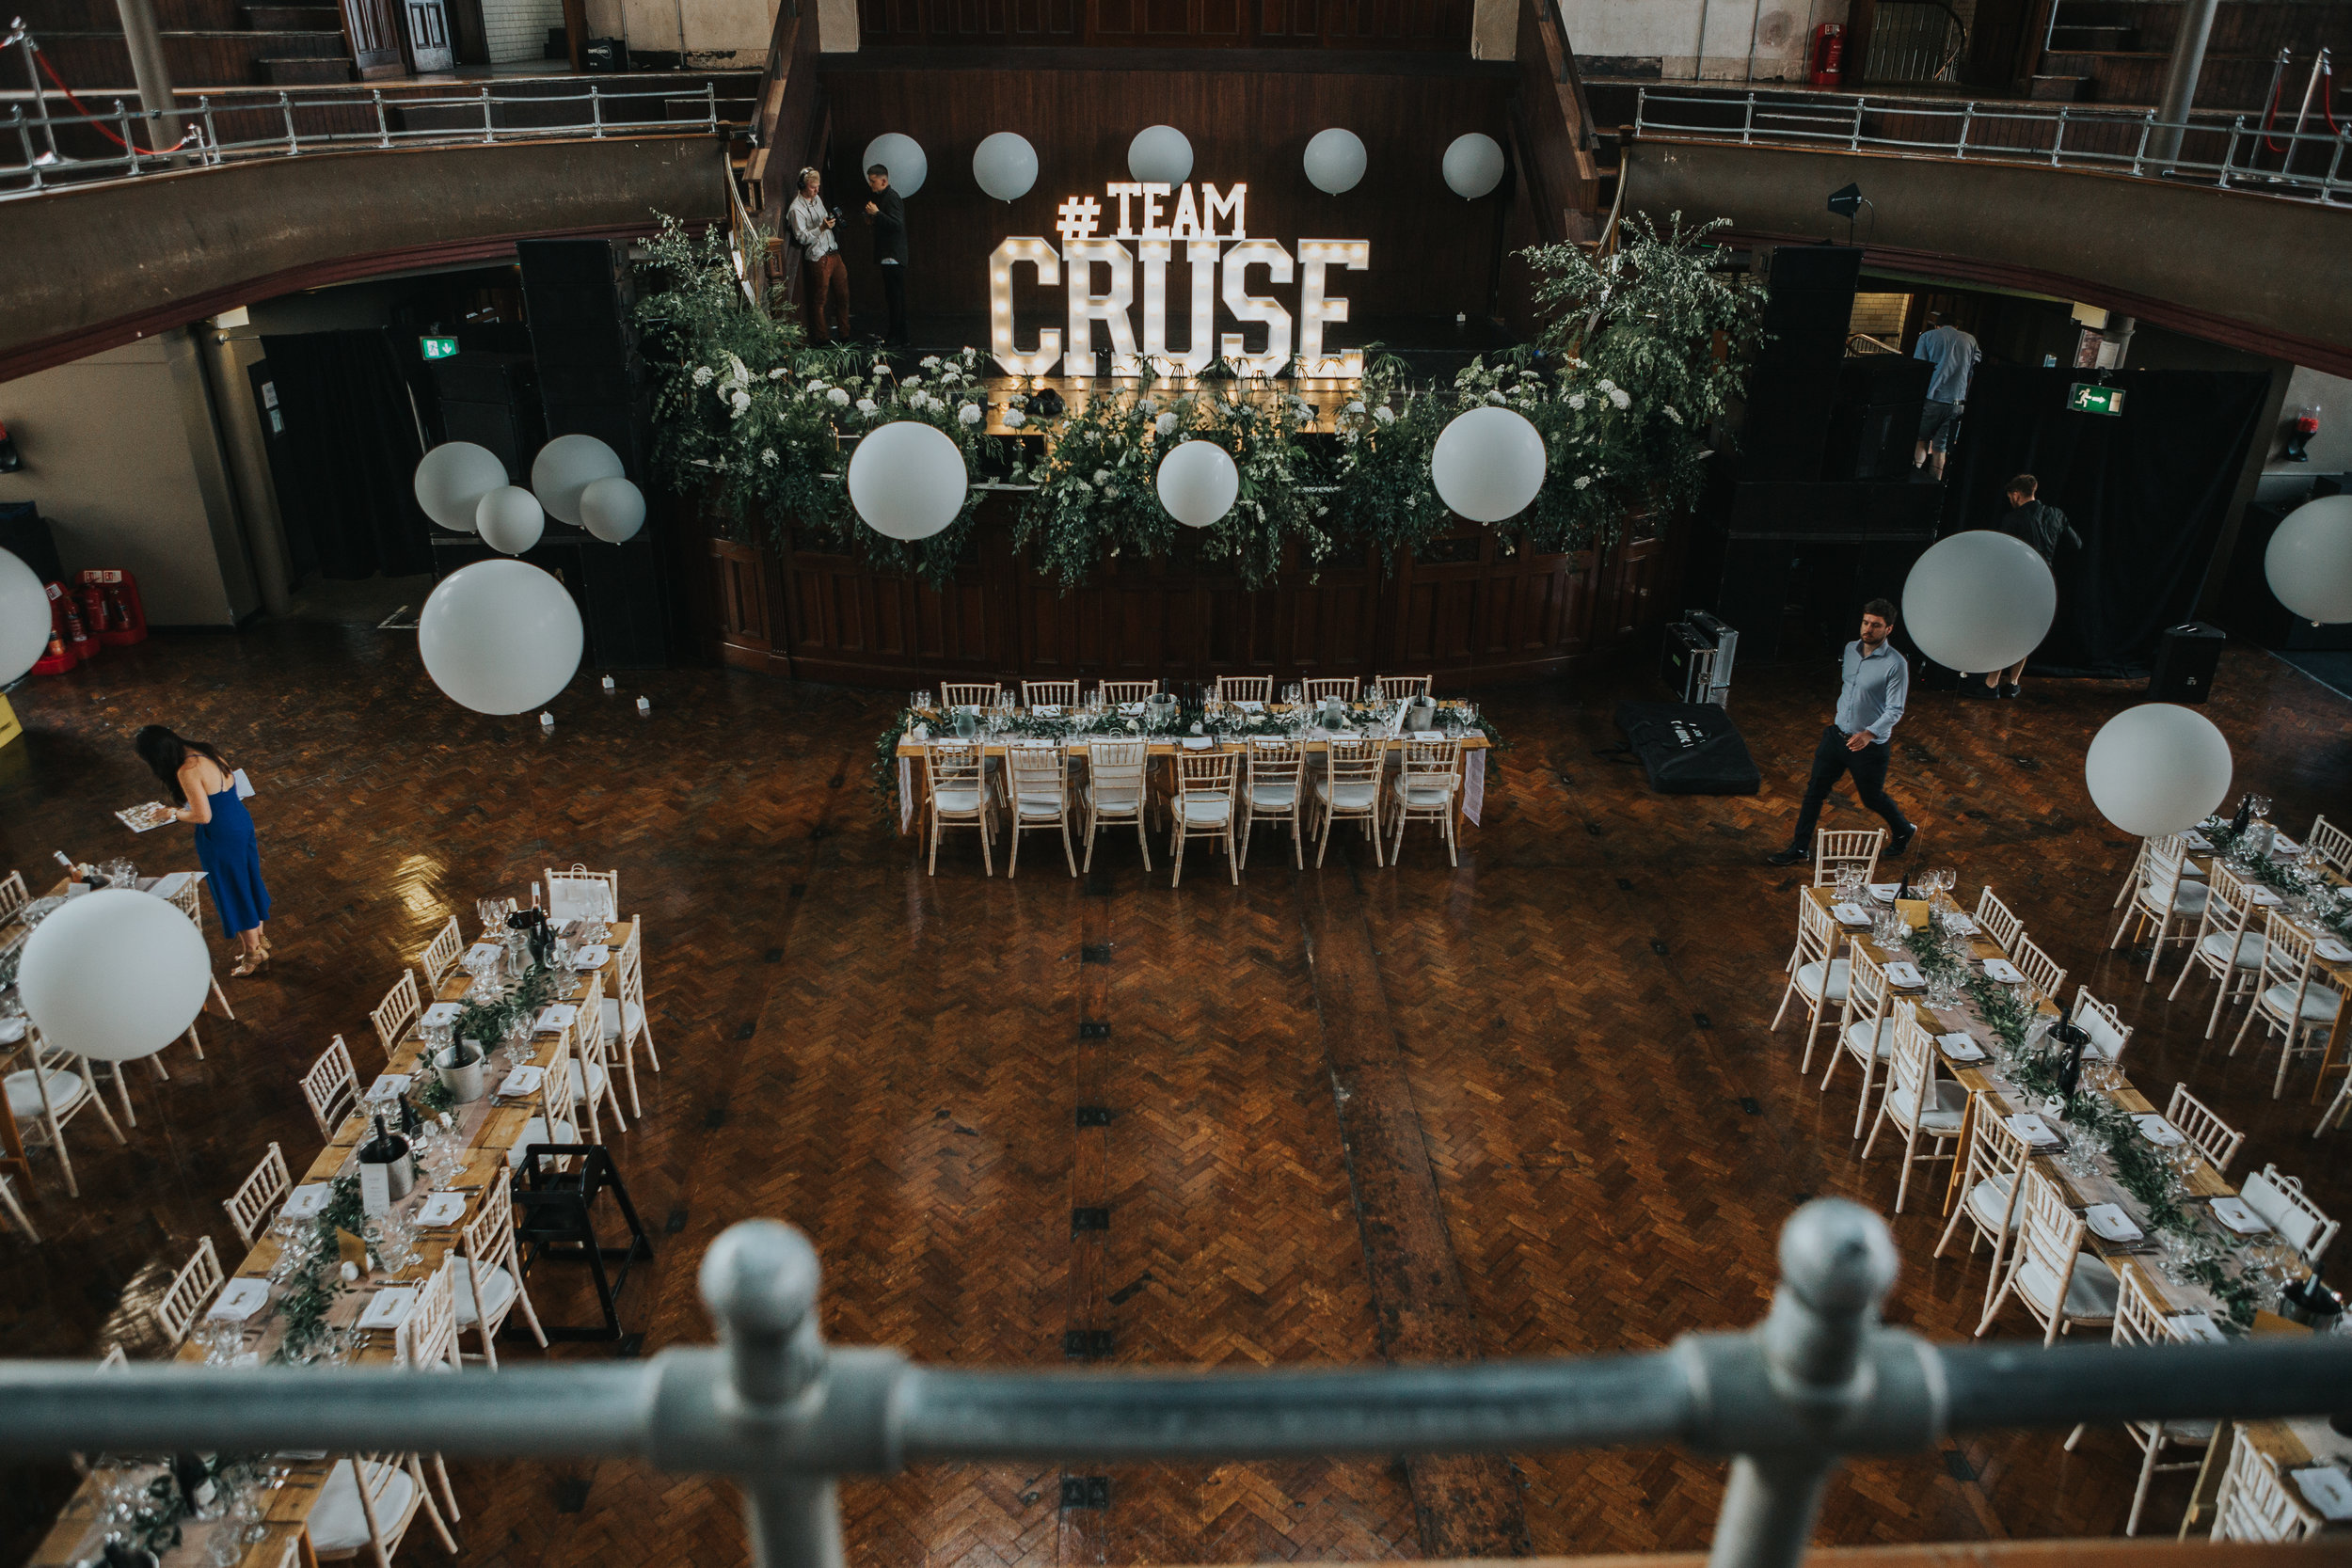 Tables are set up with #TEAMCRUSE sign in the middle.